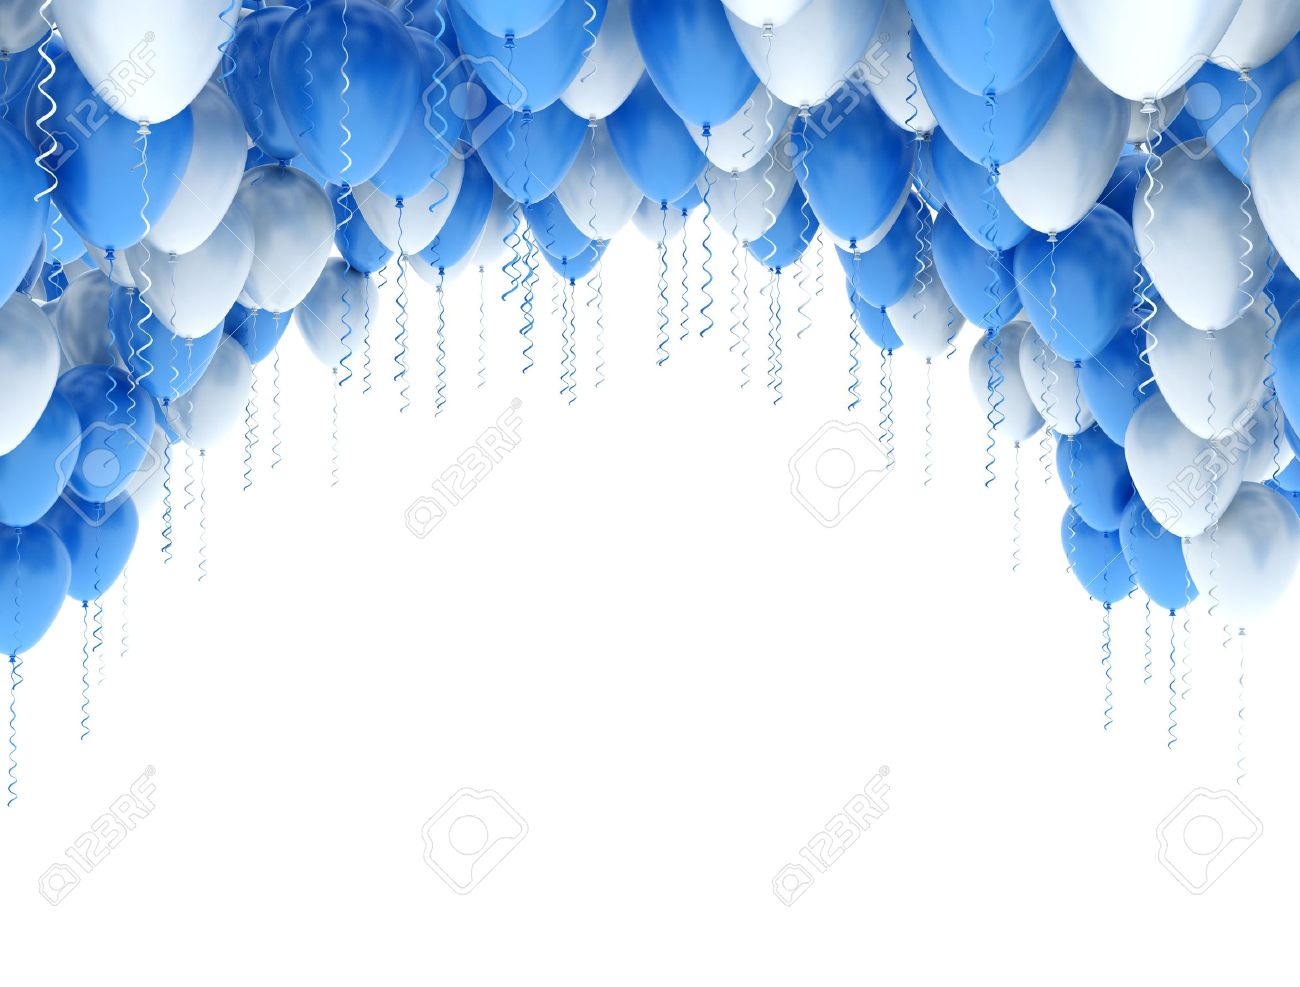 11324635 party balloons background blue and white - blue and white beach wedding